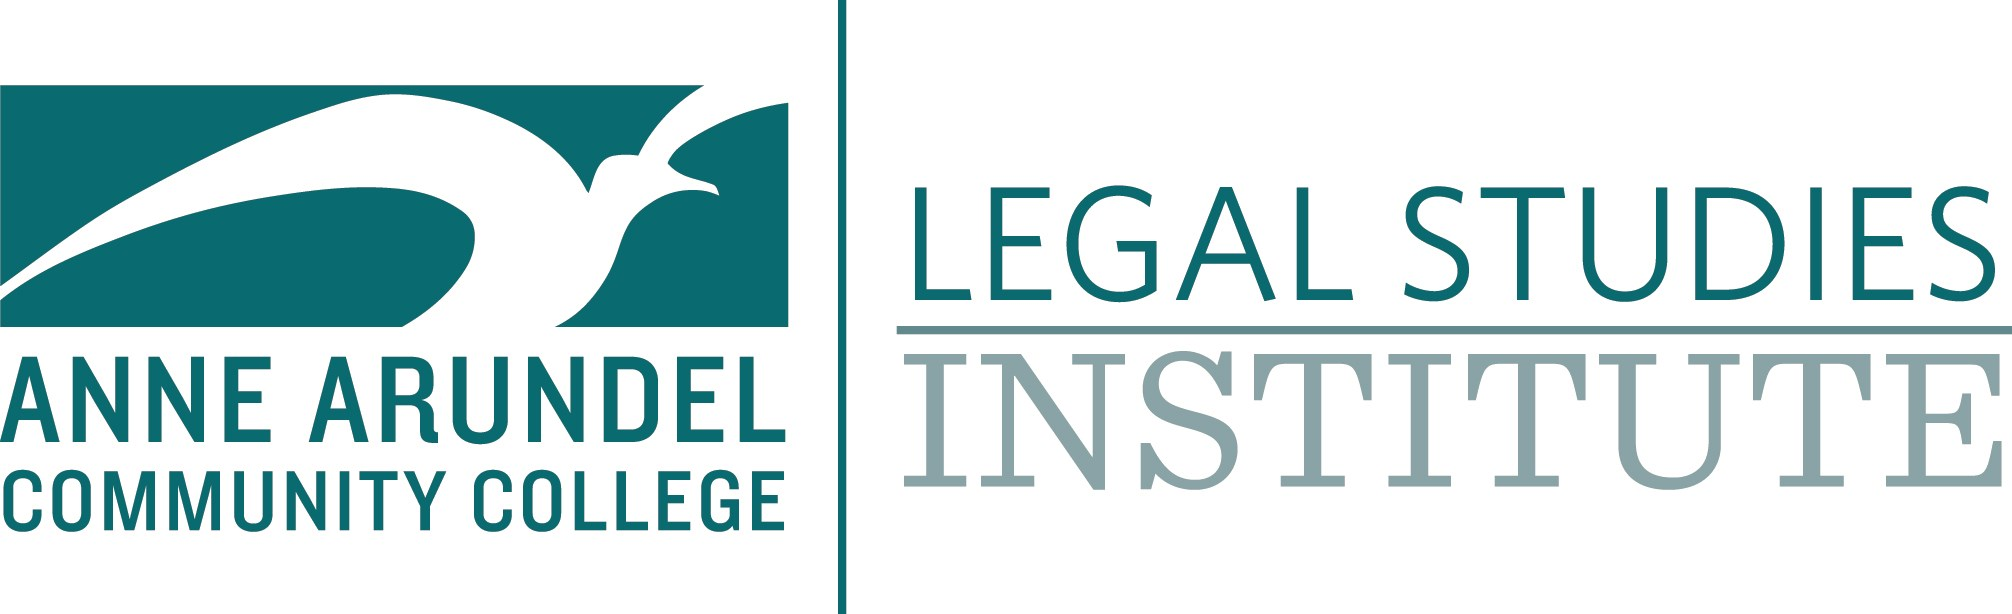 Dear Prospective Paralegal Student: Welcome to the Paralegal Studies Program in the Legal Studies Institute at Anne Arundel Community College...this program is your gateway to an exciting legal career!